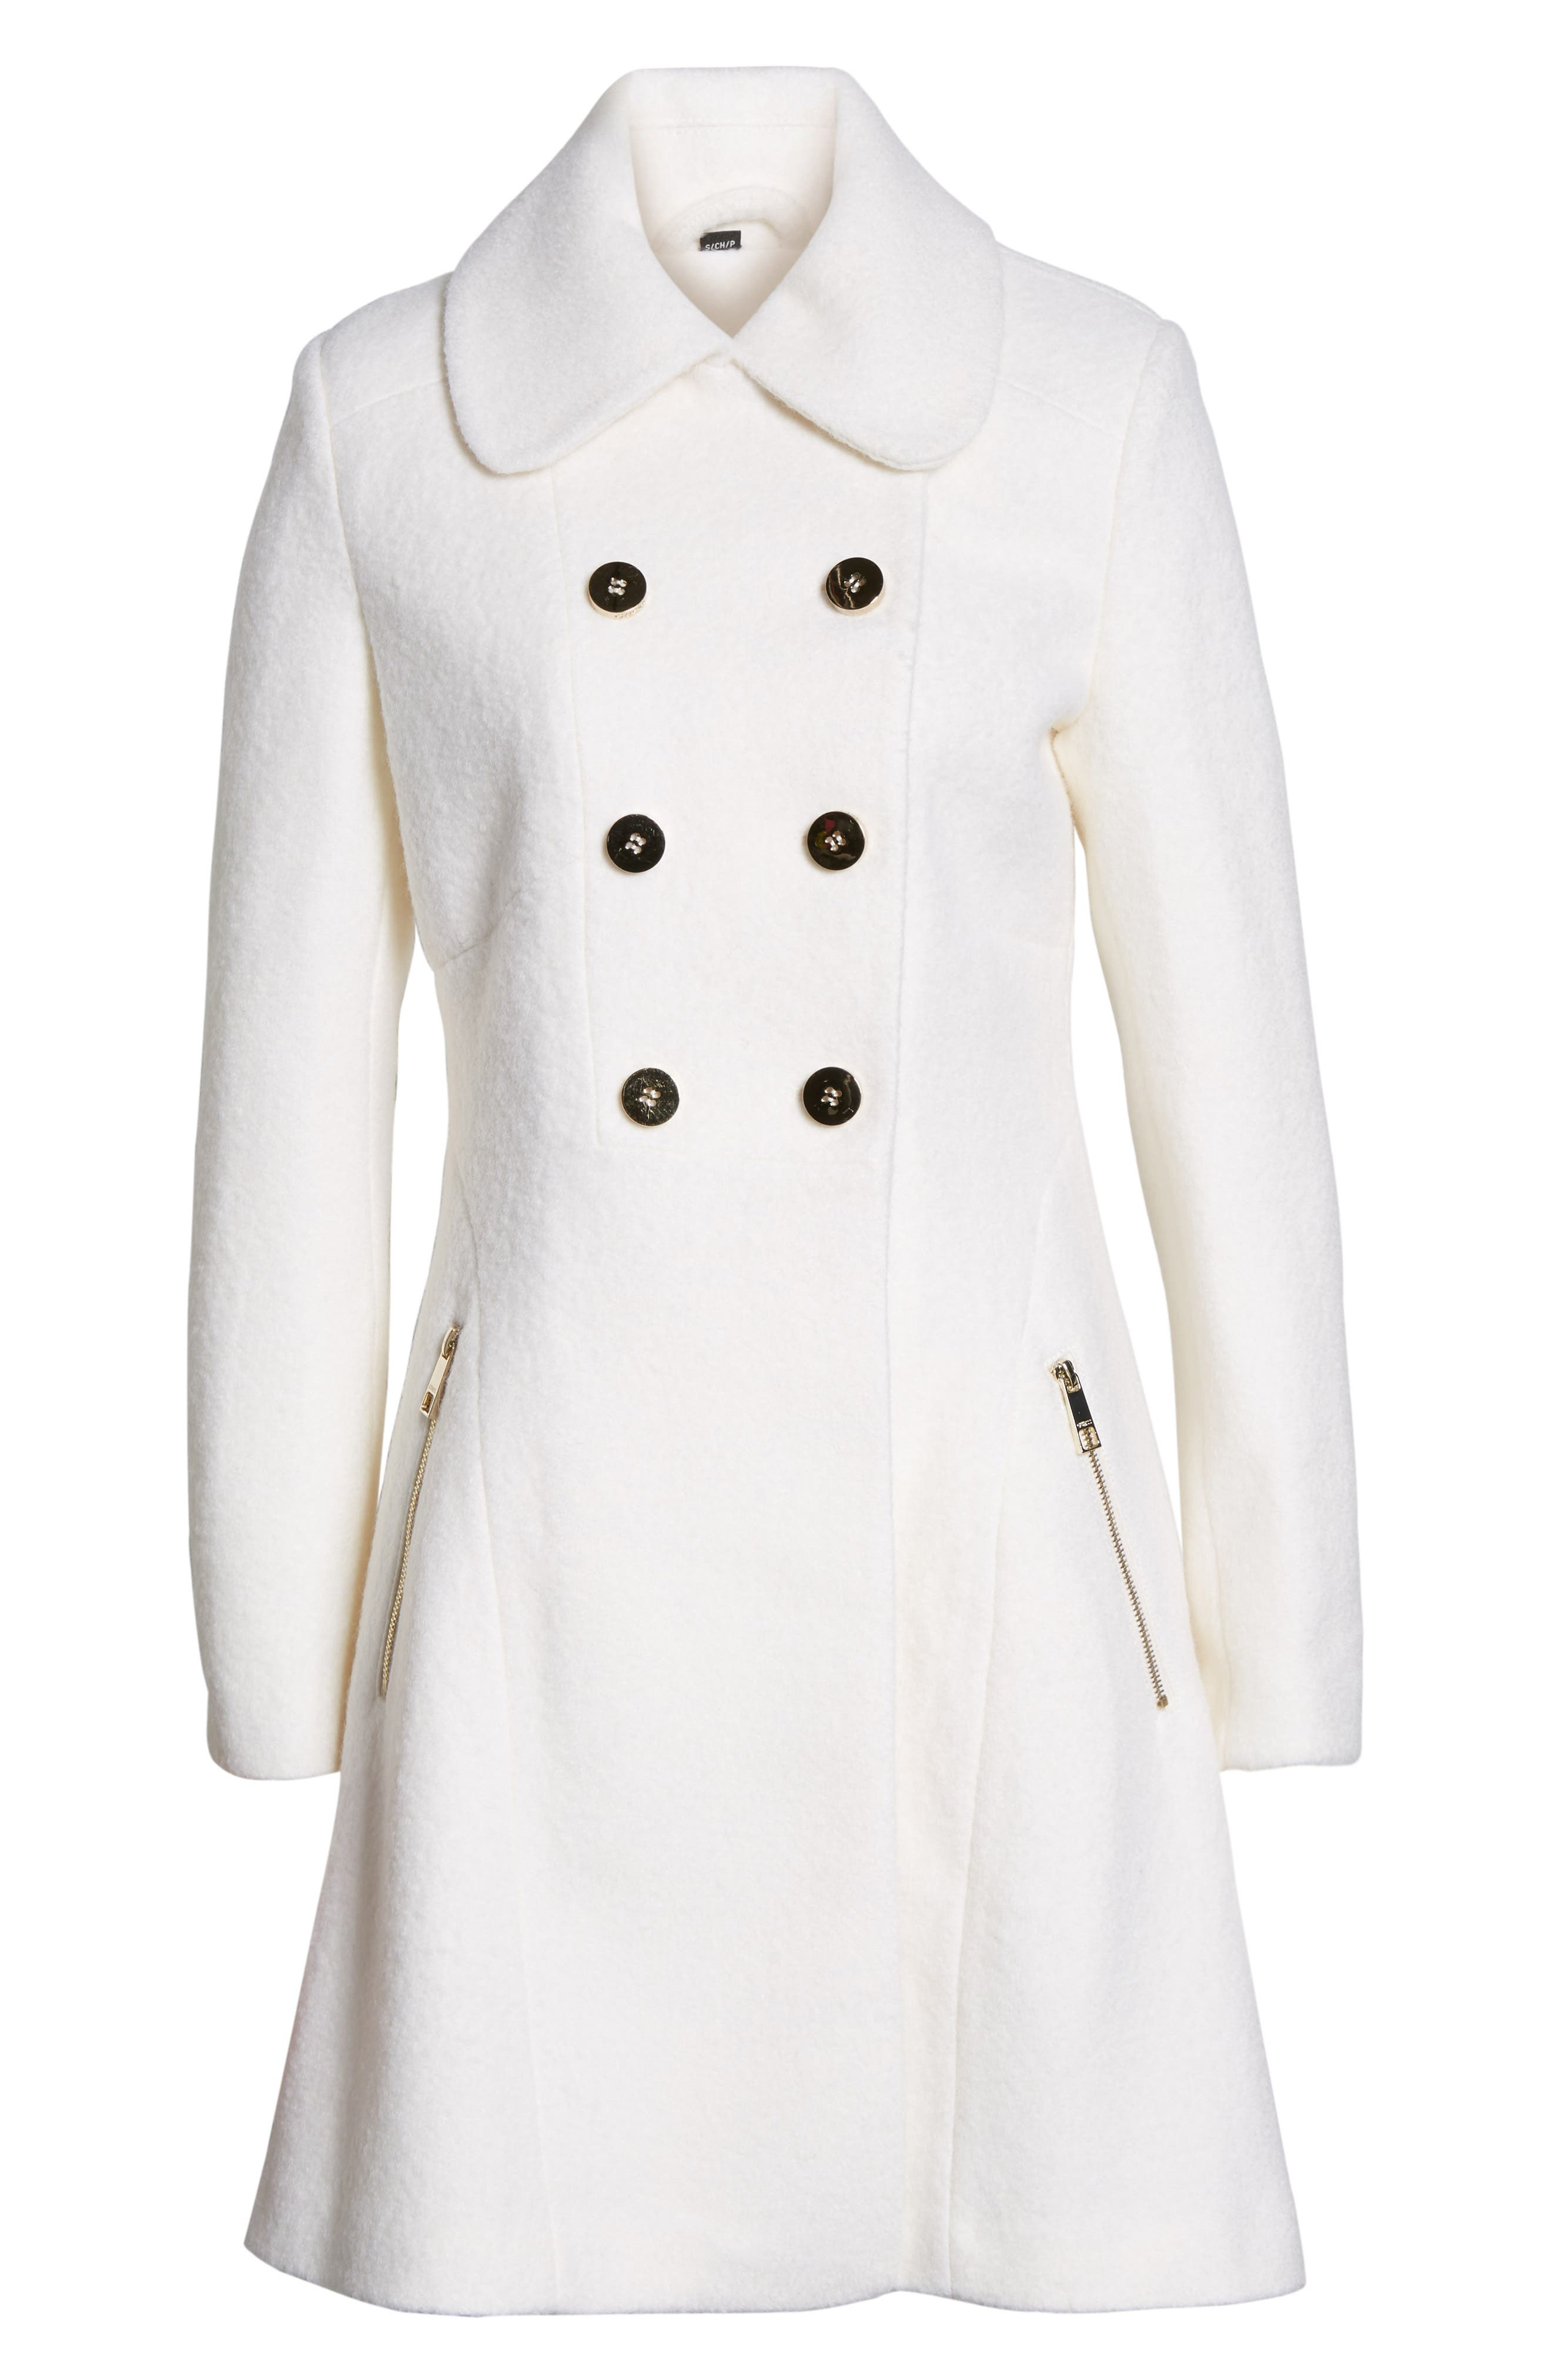 GUESS Double Breasted Boiled Wool Peacoat (Regular & Petite)